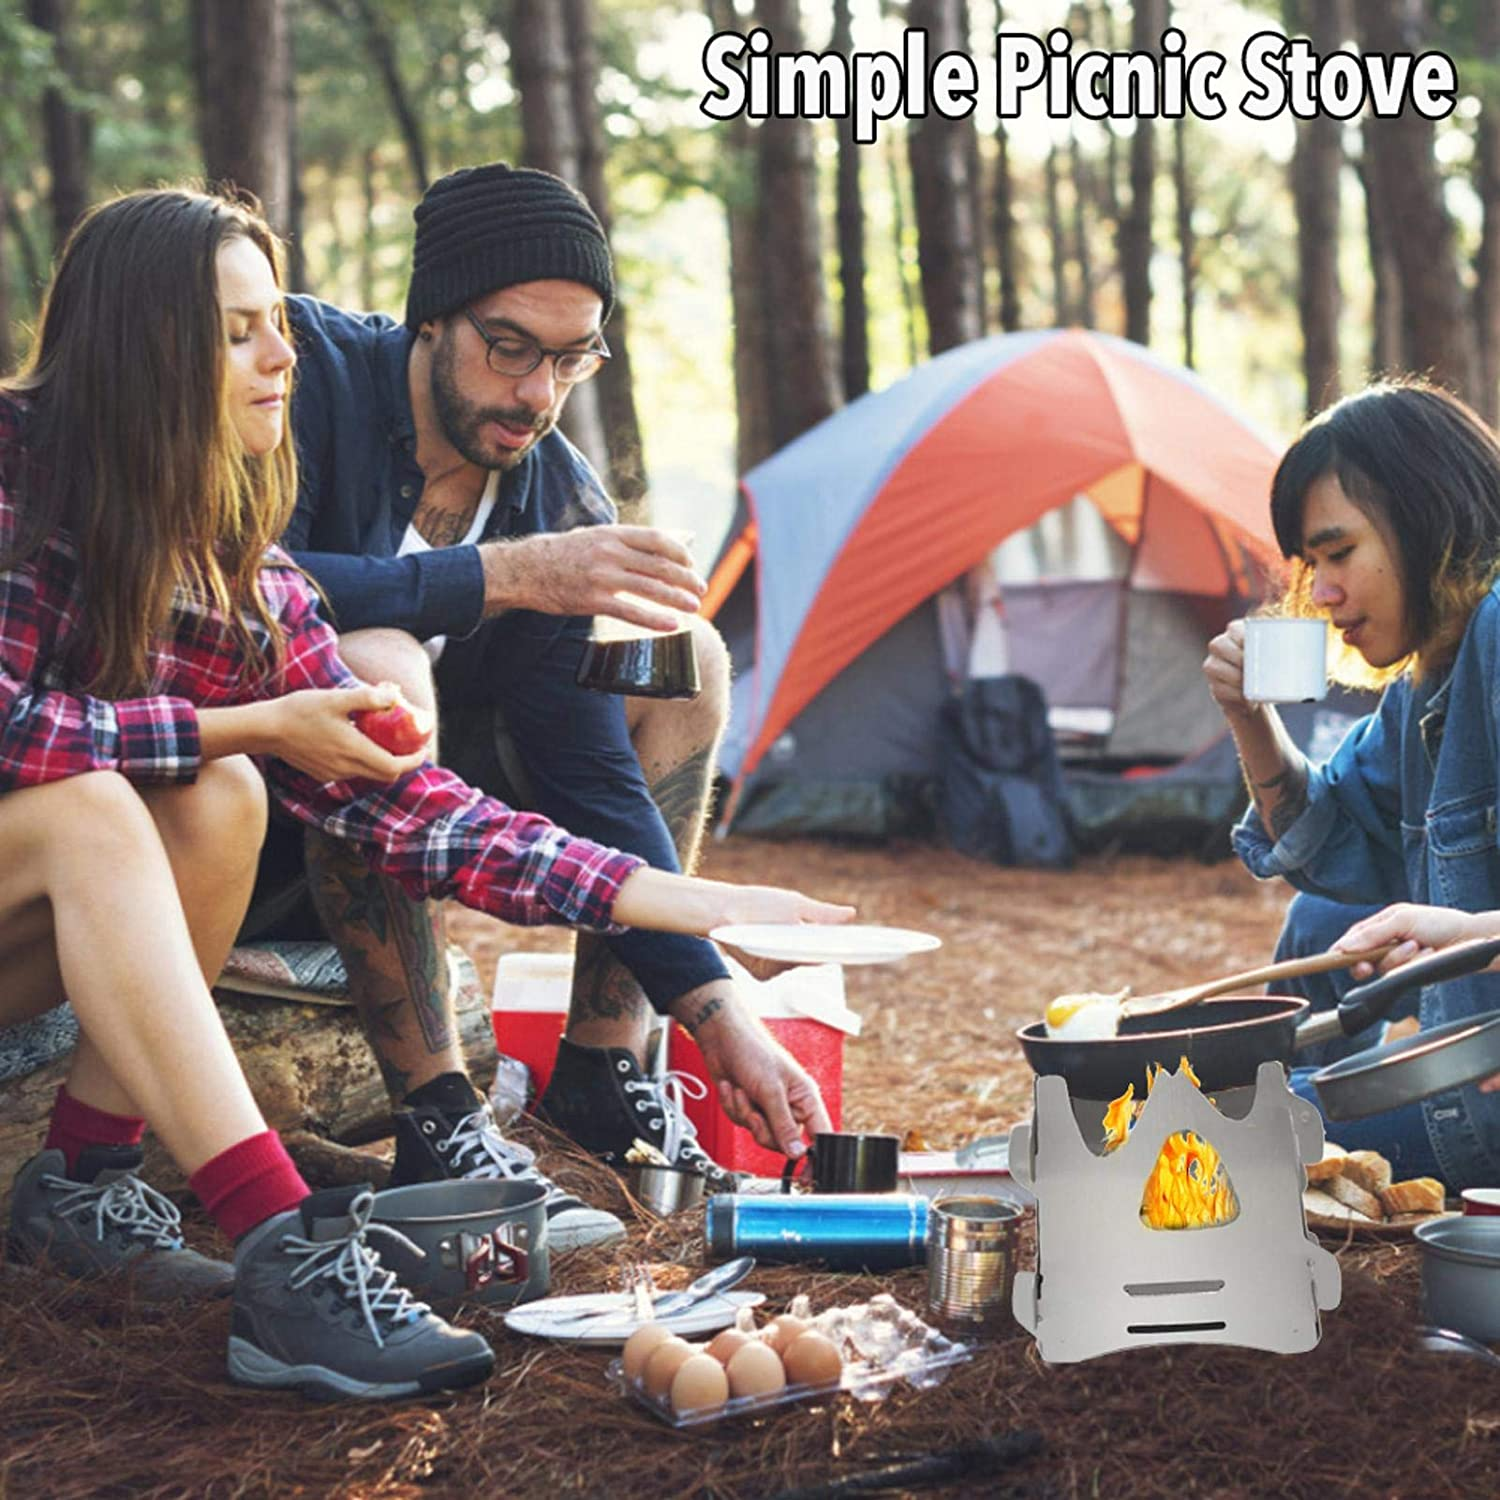 OrangeC Portable Picnic Stove Camping Stove Lightweight Stainless Steel Wood Burning Stove Suitable for Camping Cooking Picnic Backpacking Outdoor